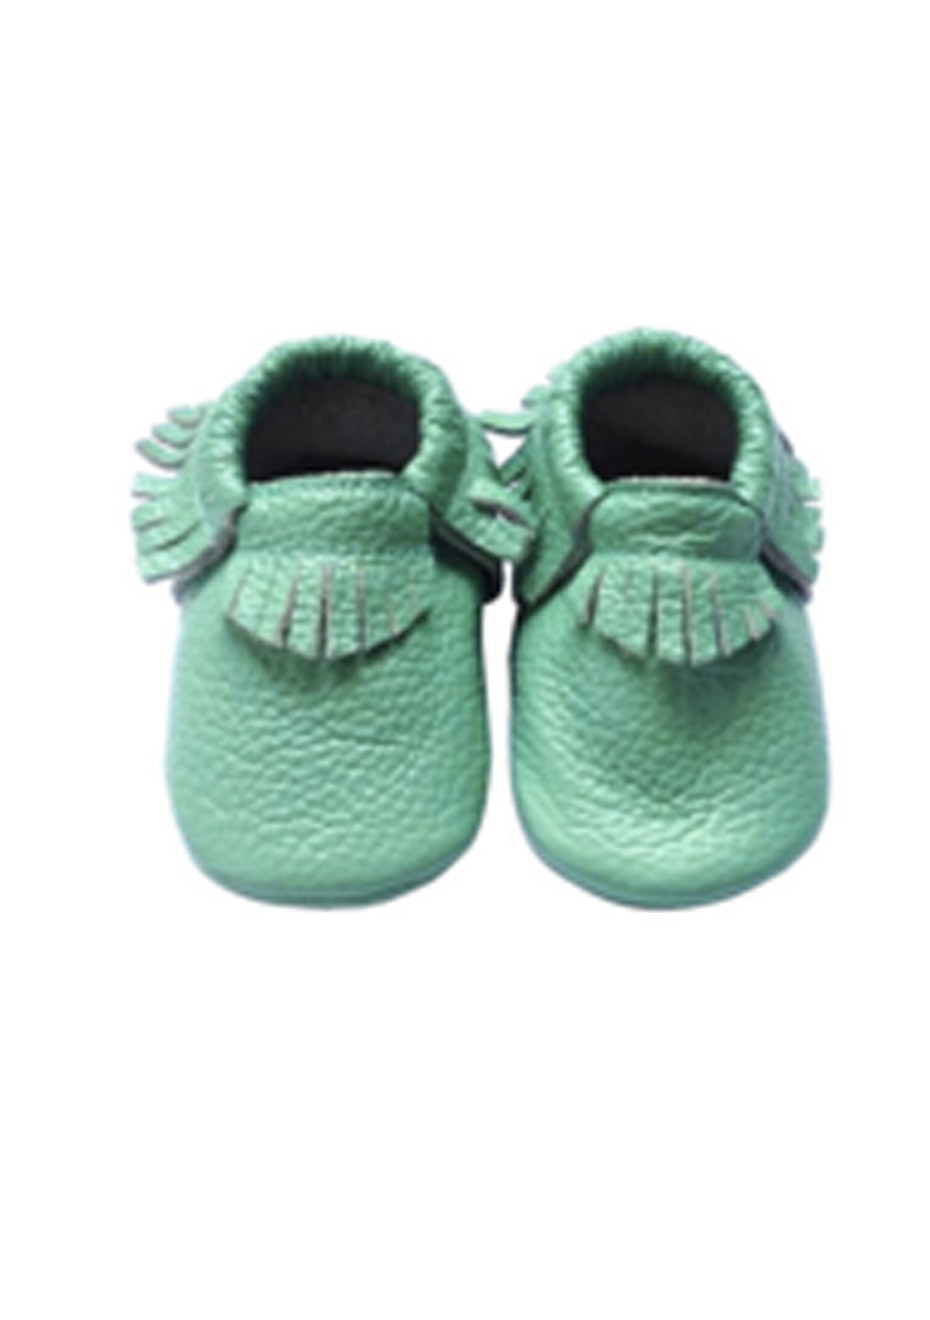 Baby  Leather Shoes - Teal